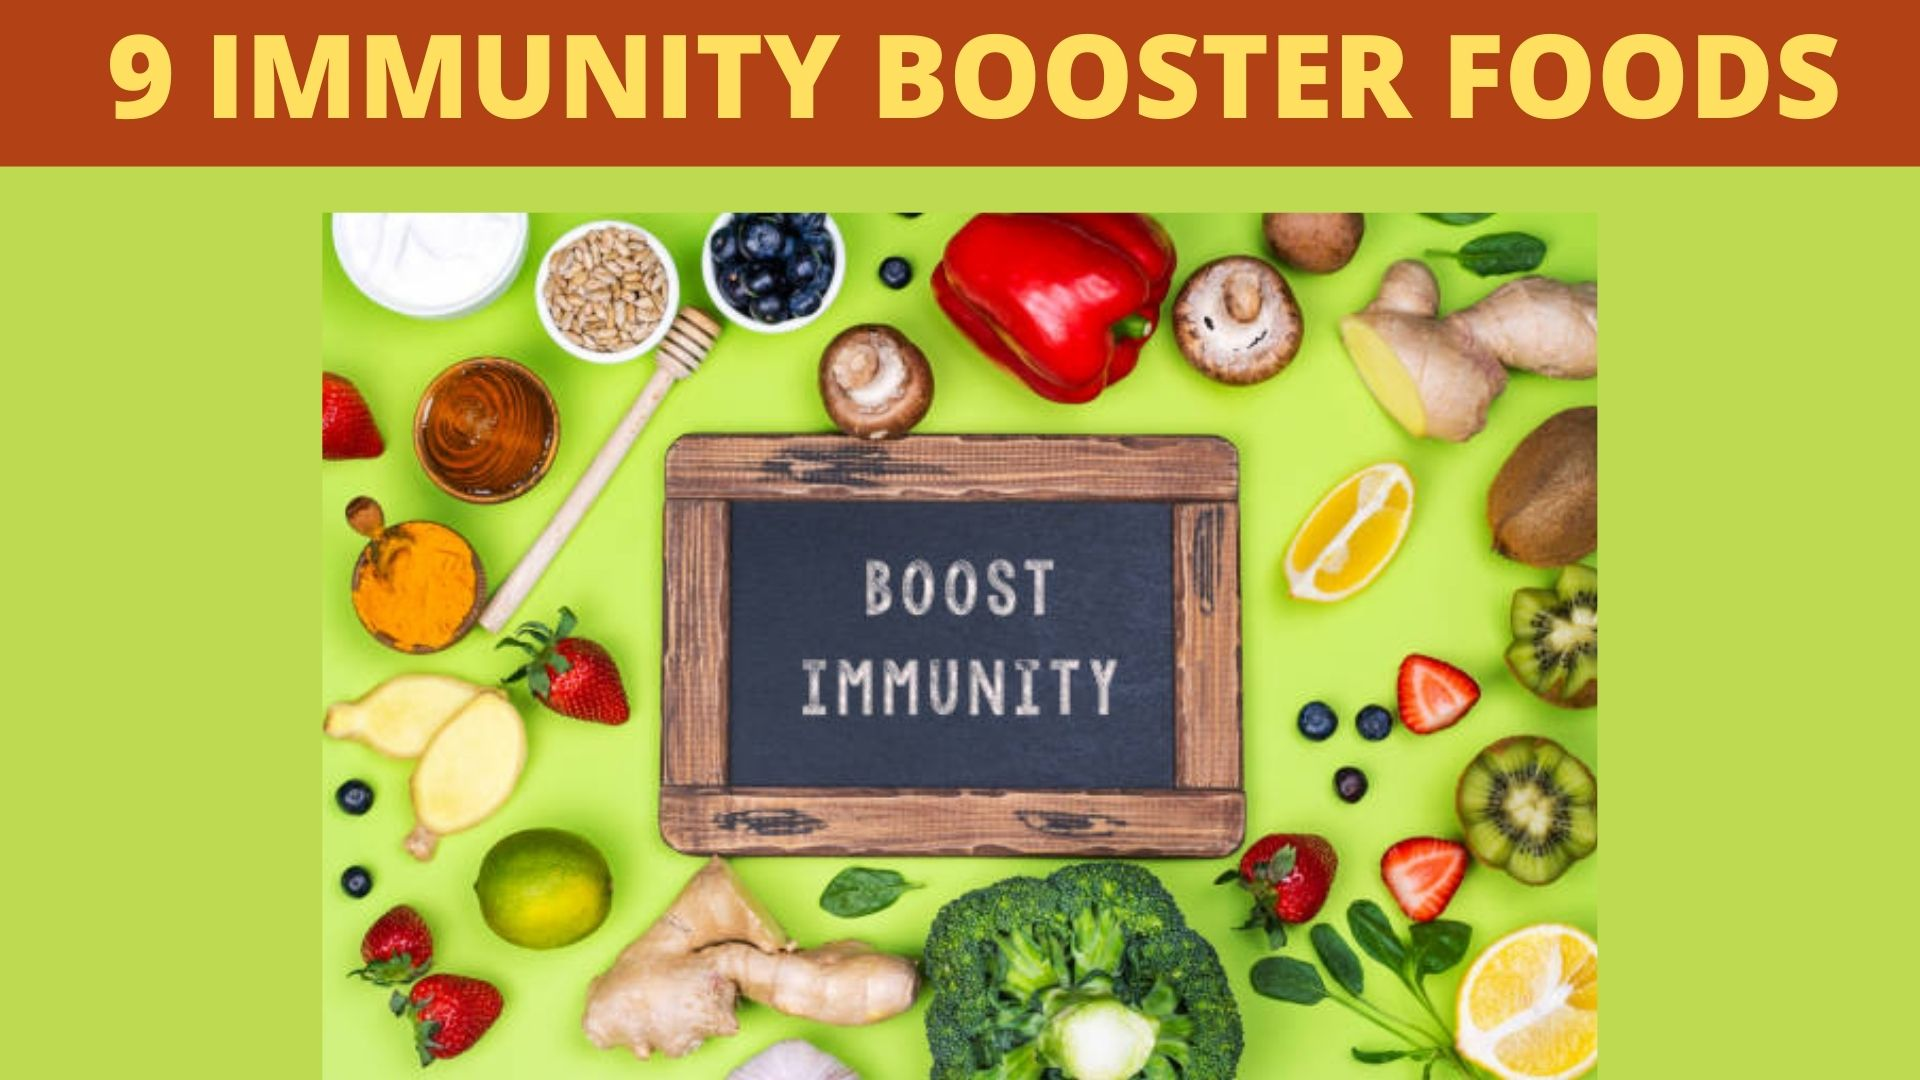 9 Immunity booster foods